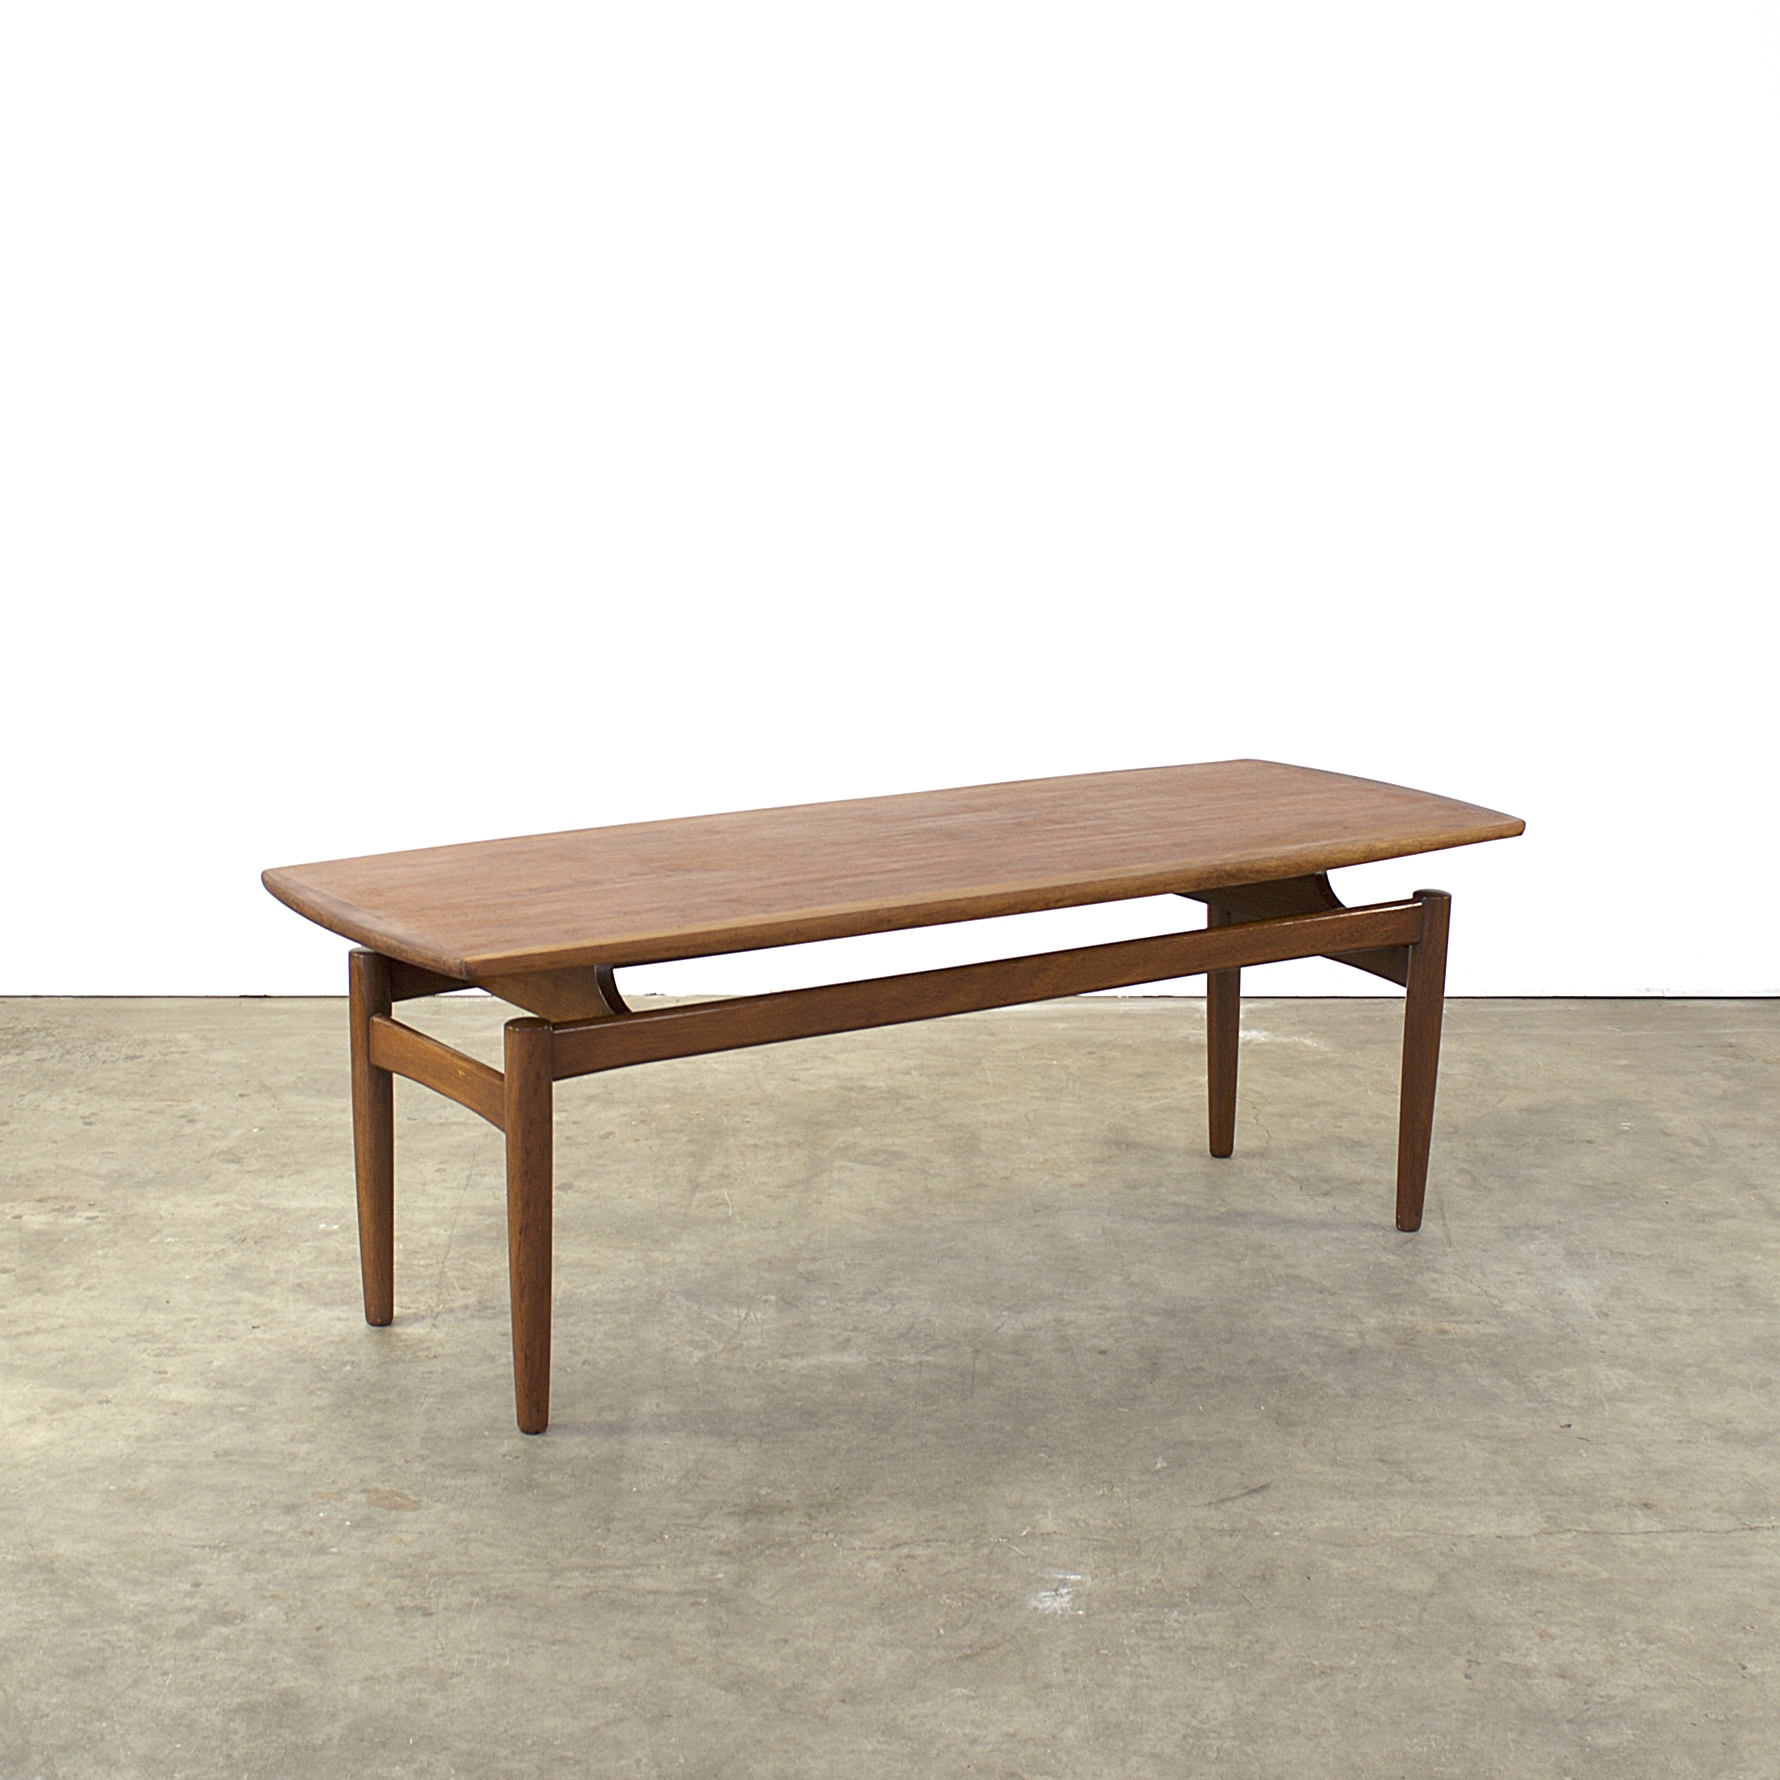 60 s coffee table scandinavian design barbmama for 60s table design